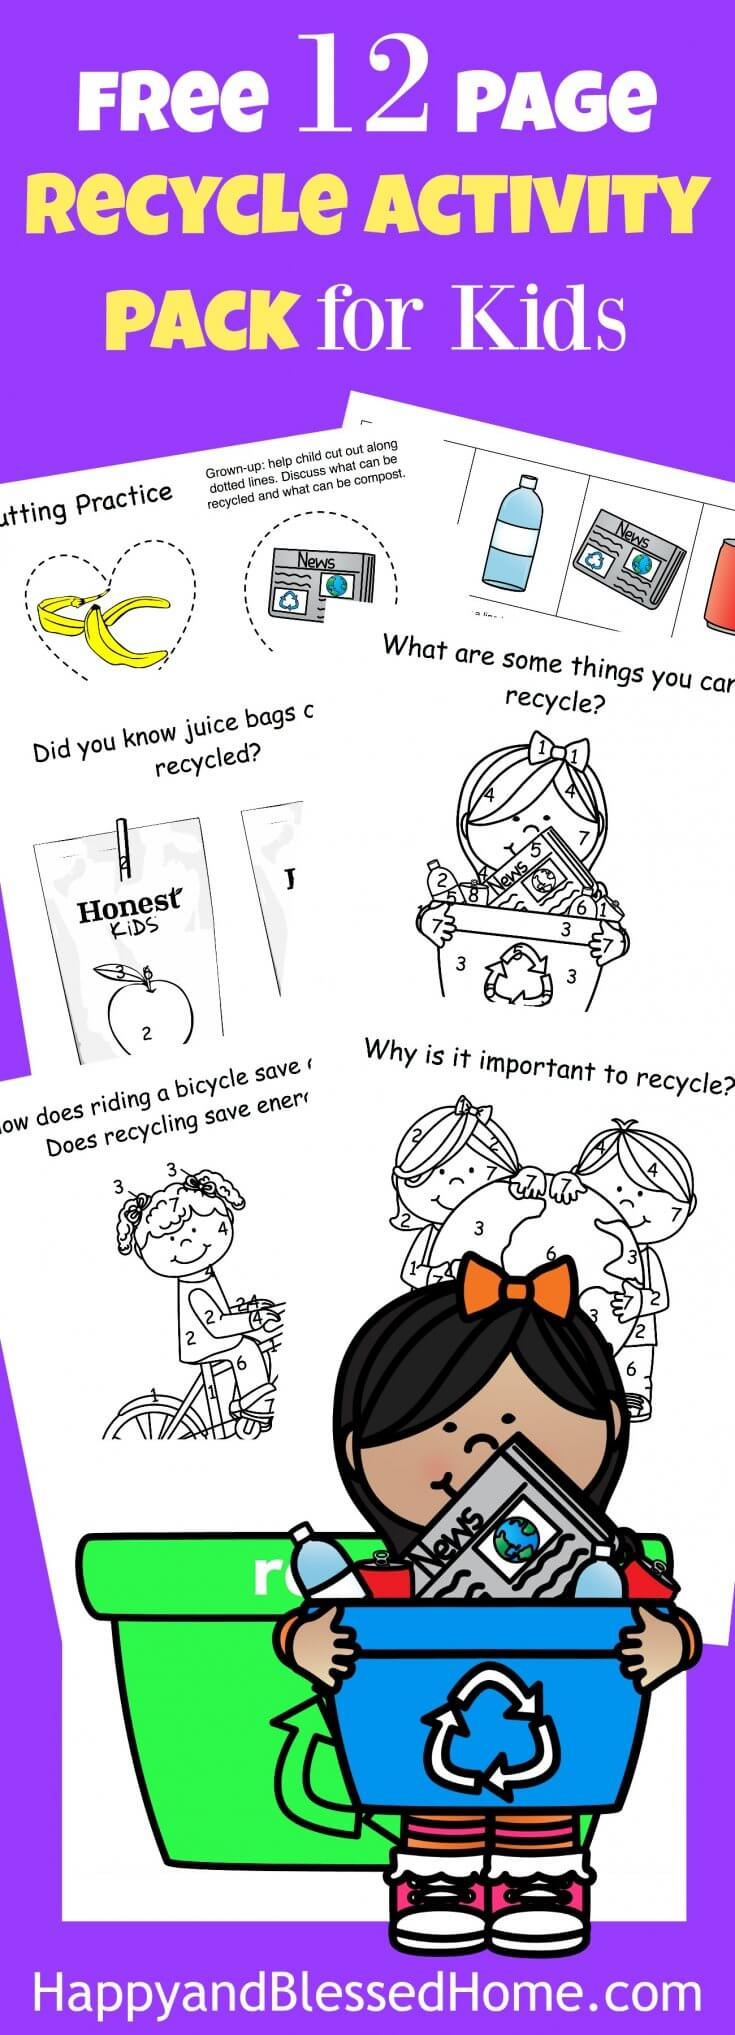 FREE 12 PAGE RECYCLE ACTIVITY PACK FOR KIDS with Coloring Pages